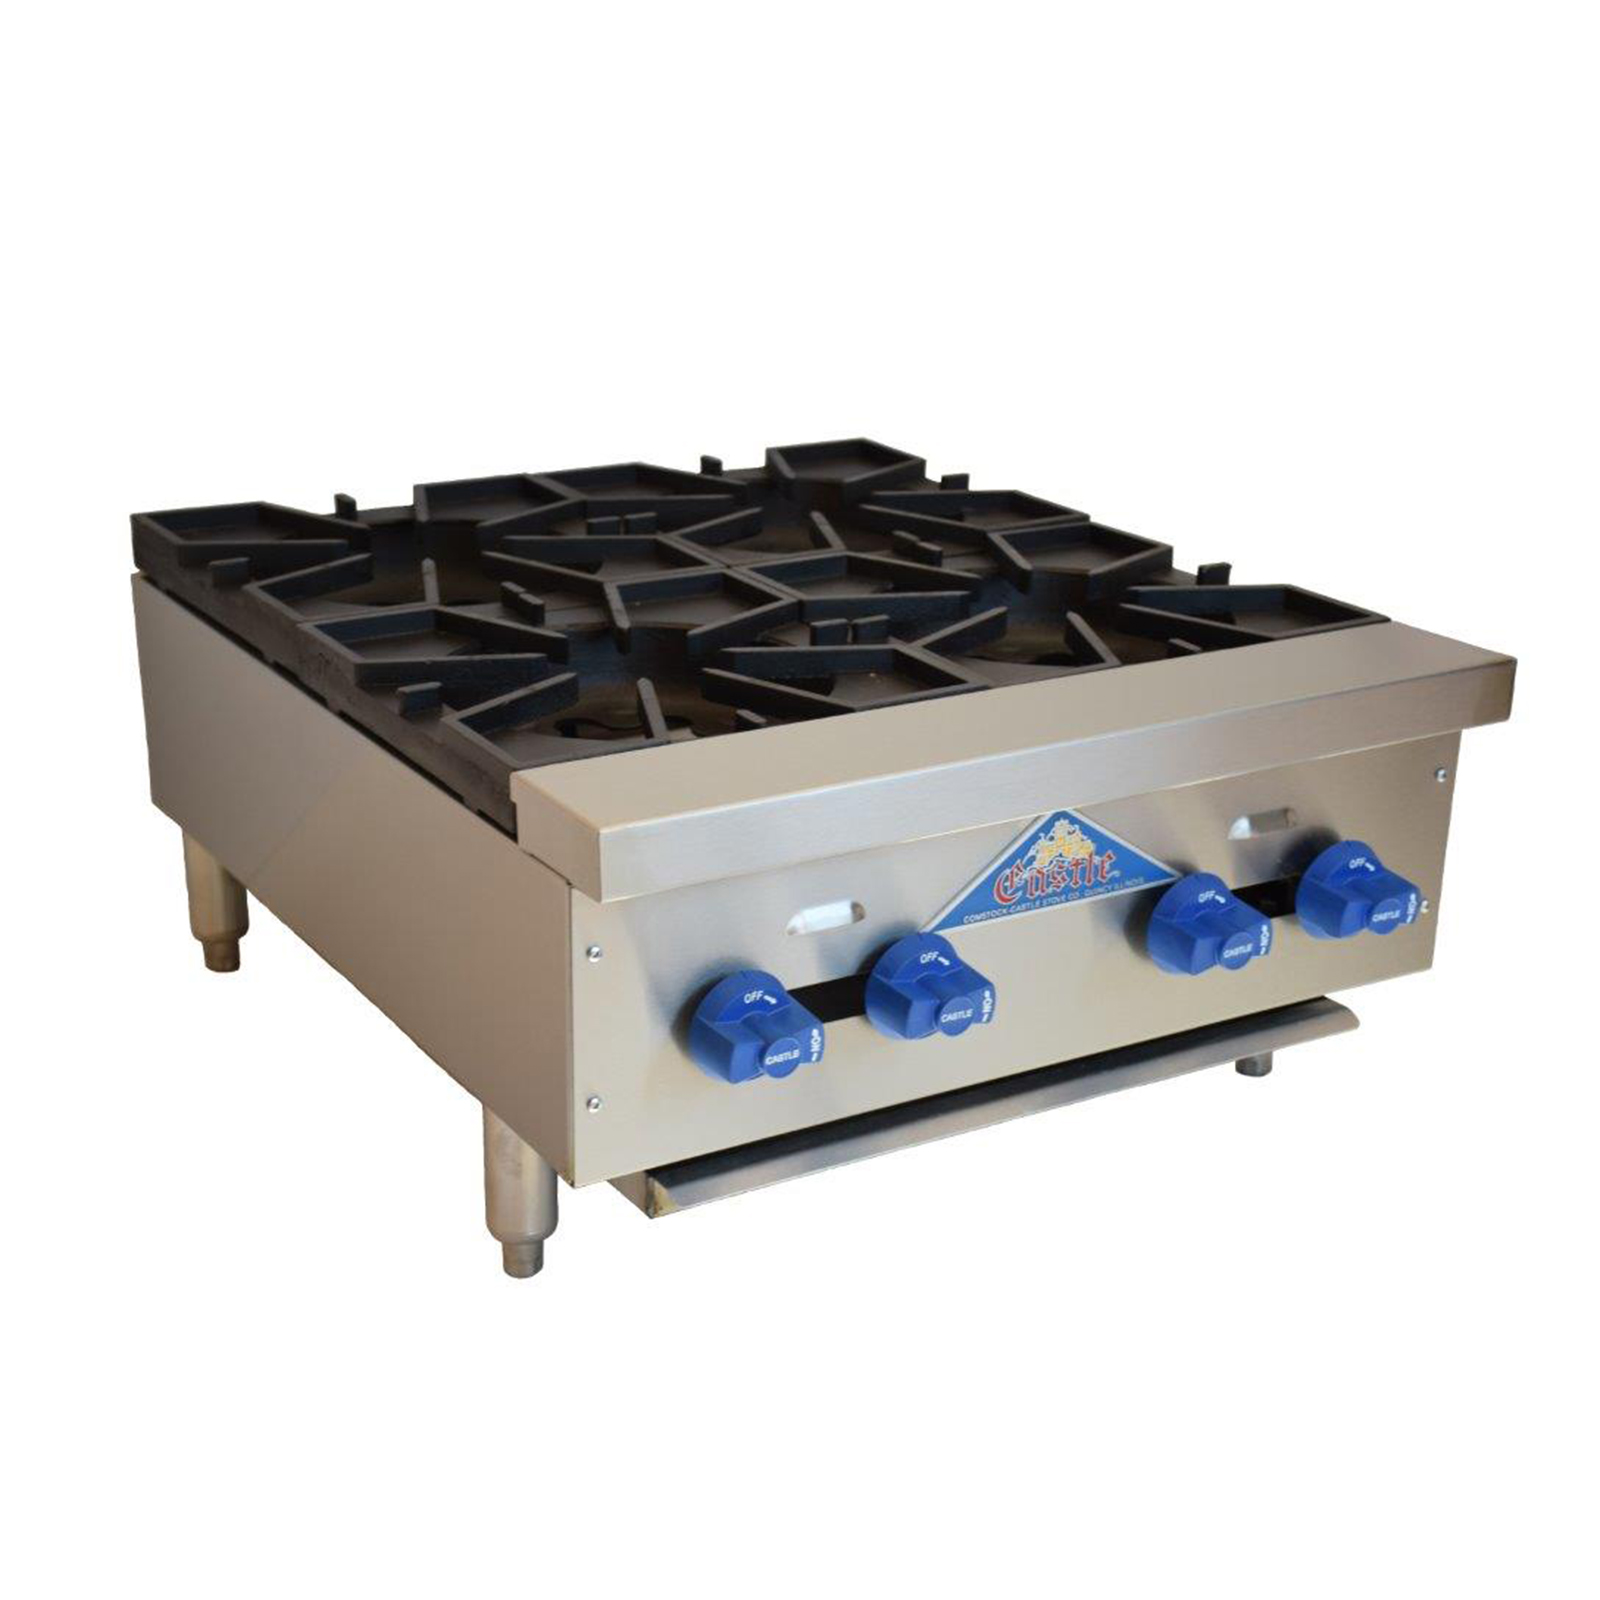 Comstock-Castle FHP24 hotplate, countertop, gas